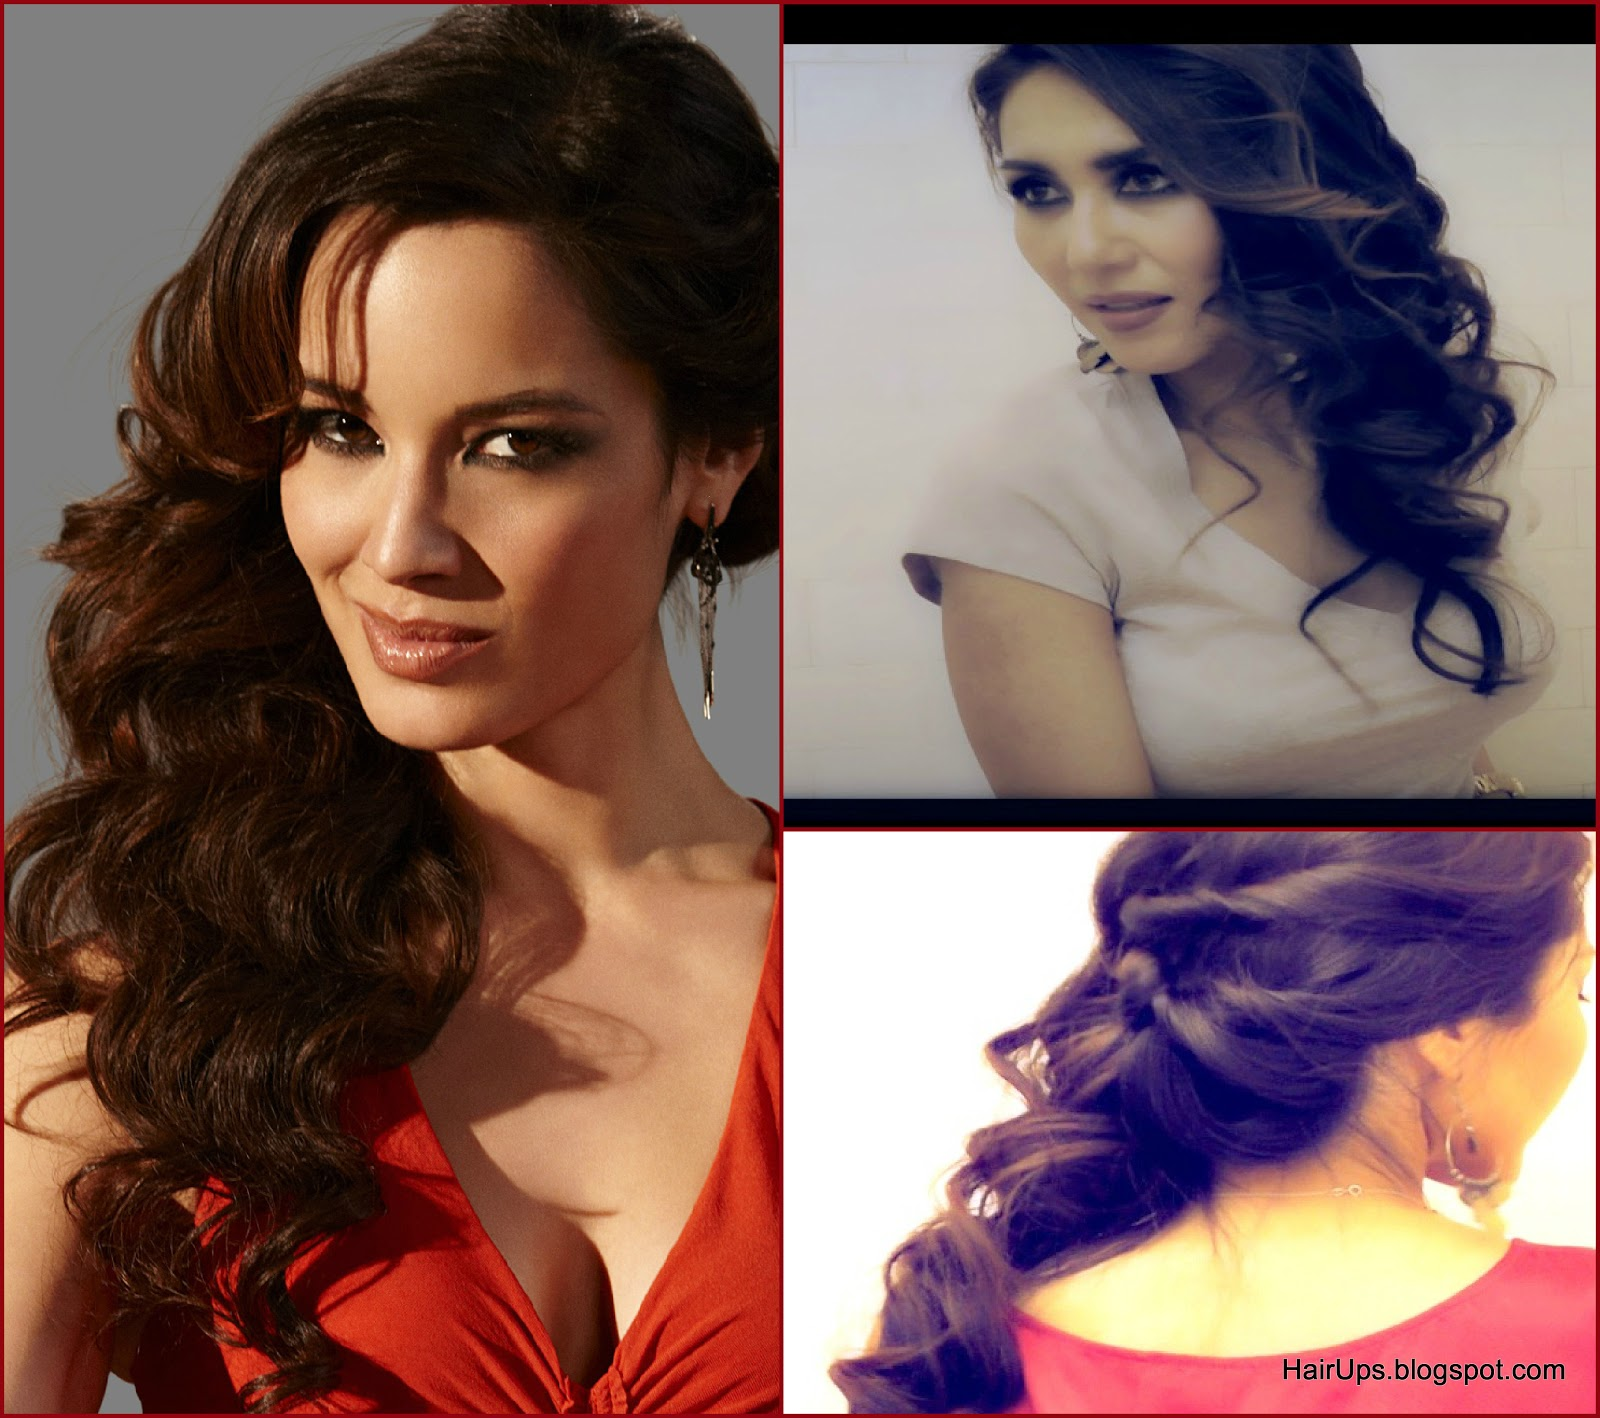 Stupendous 007 Bond Girl Side Curly Half Up Hairstyles Cute Hair Tutorial Video Hairstyles For Women Draintrainus